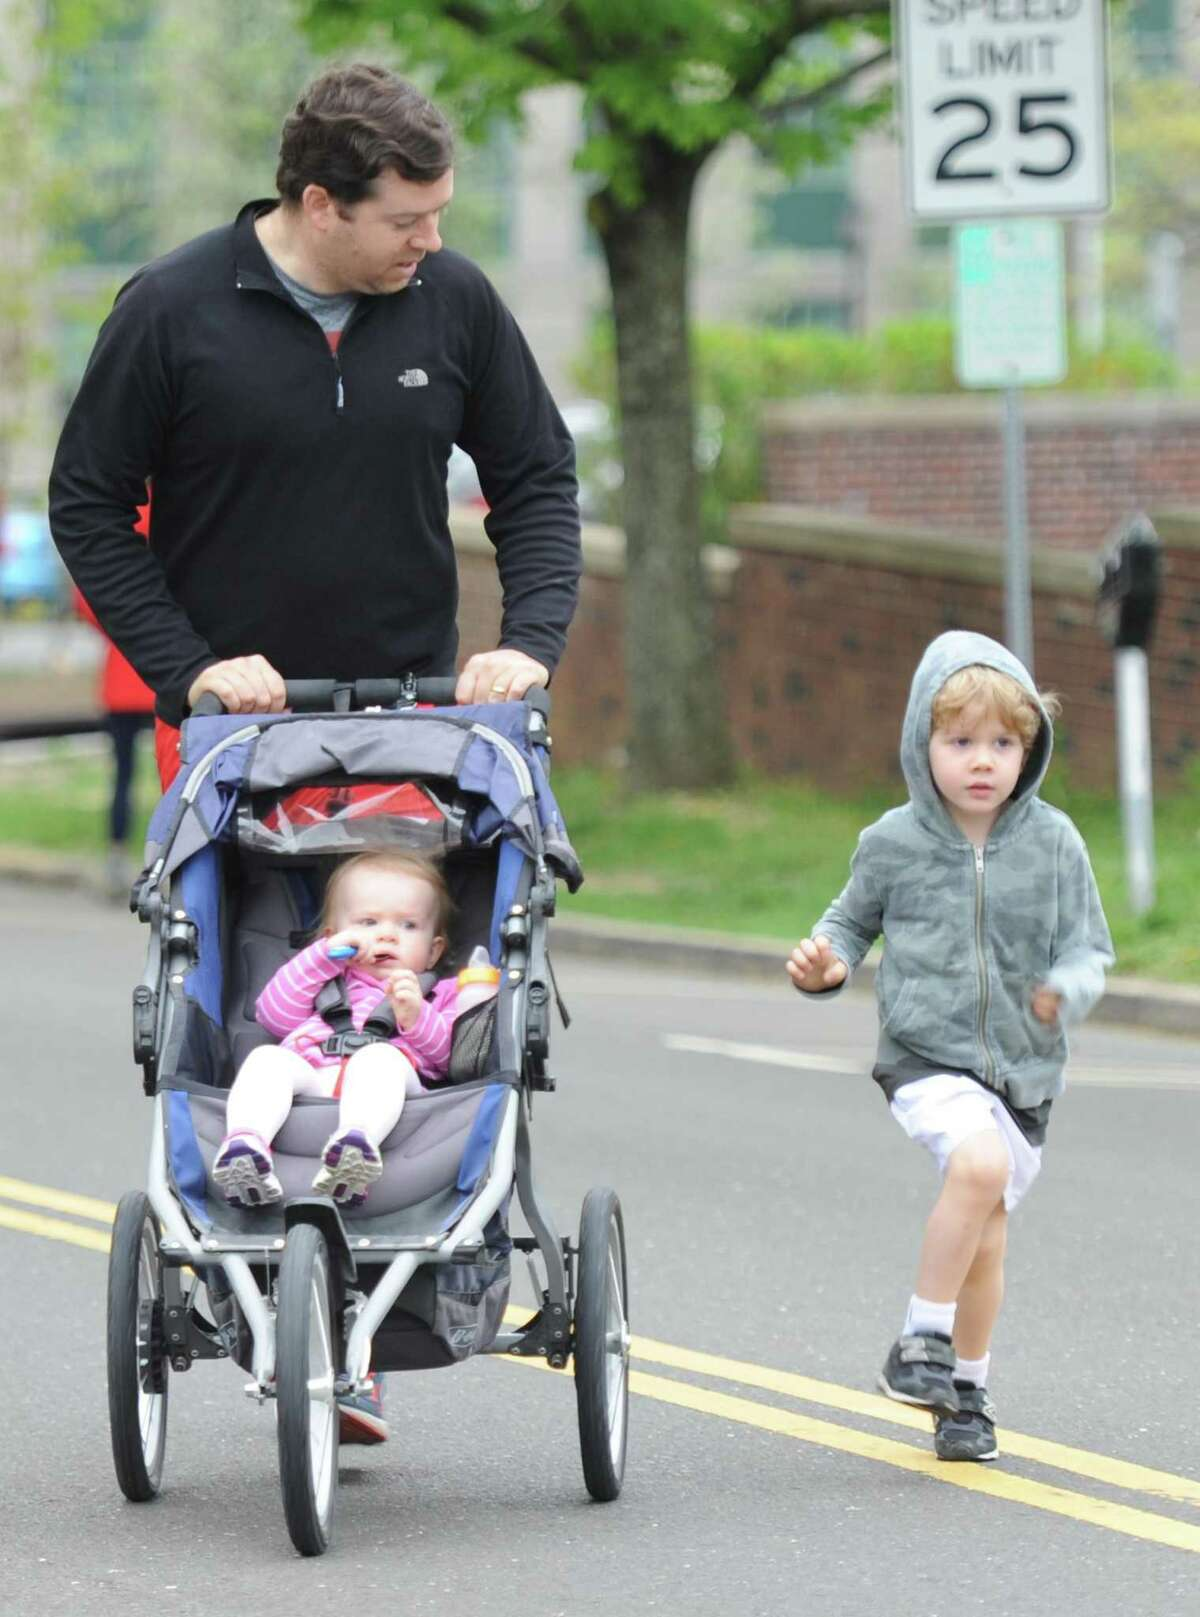 Photos from the Breast Cancer Alliance 5K Run/Walk for Hope at Richards in Greenwich, Conn. Sunday, May 6, 2018. Hundreds of partcipants ran and walked through the streets of Greenwich, looping from Richards in central Greenwich out to Bruce Park and back. Funds raised by the event went to the Breast Cancer Alliance, a nonprofit that invests in cancer research, breast surgery fellowships, regional education, dignified support, and screening for the underserved.